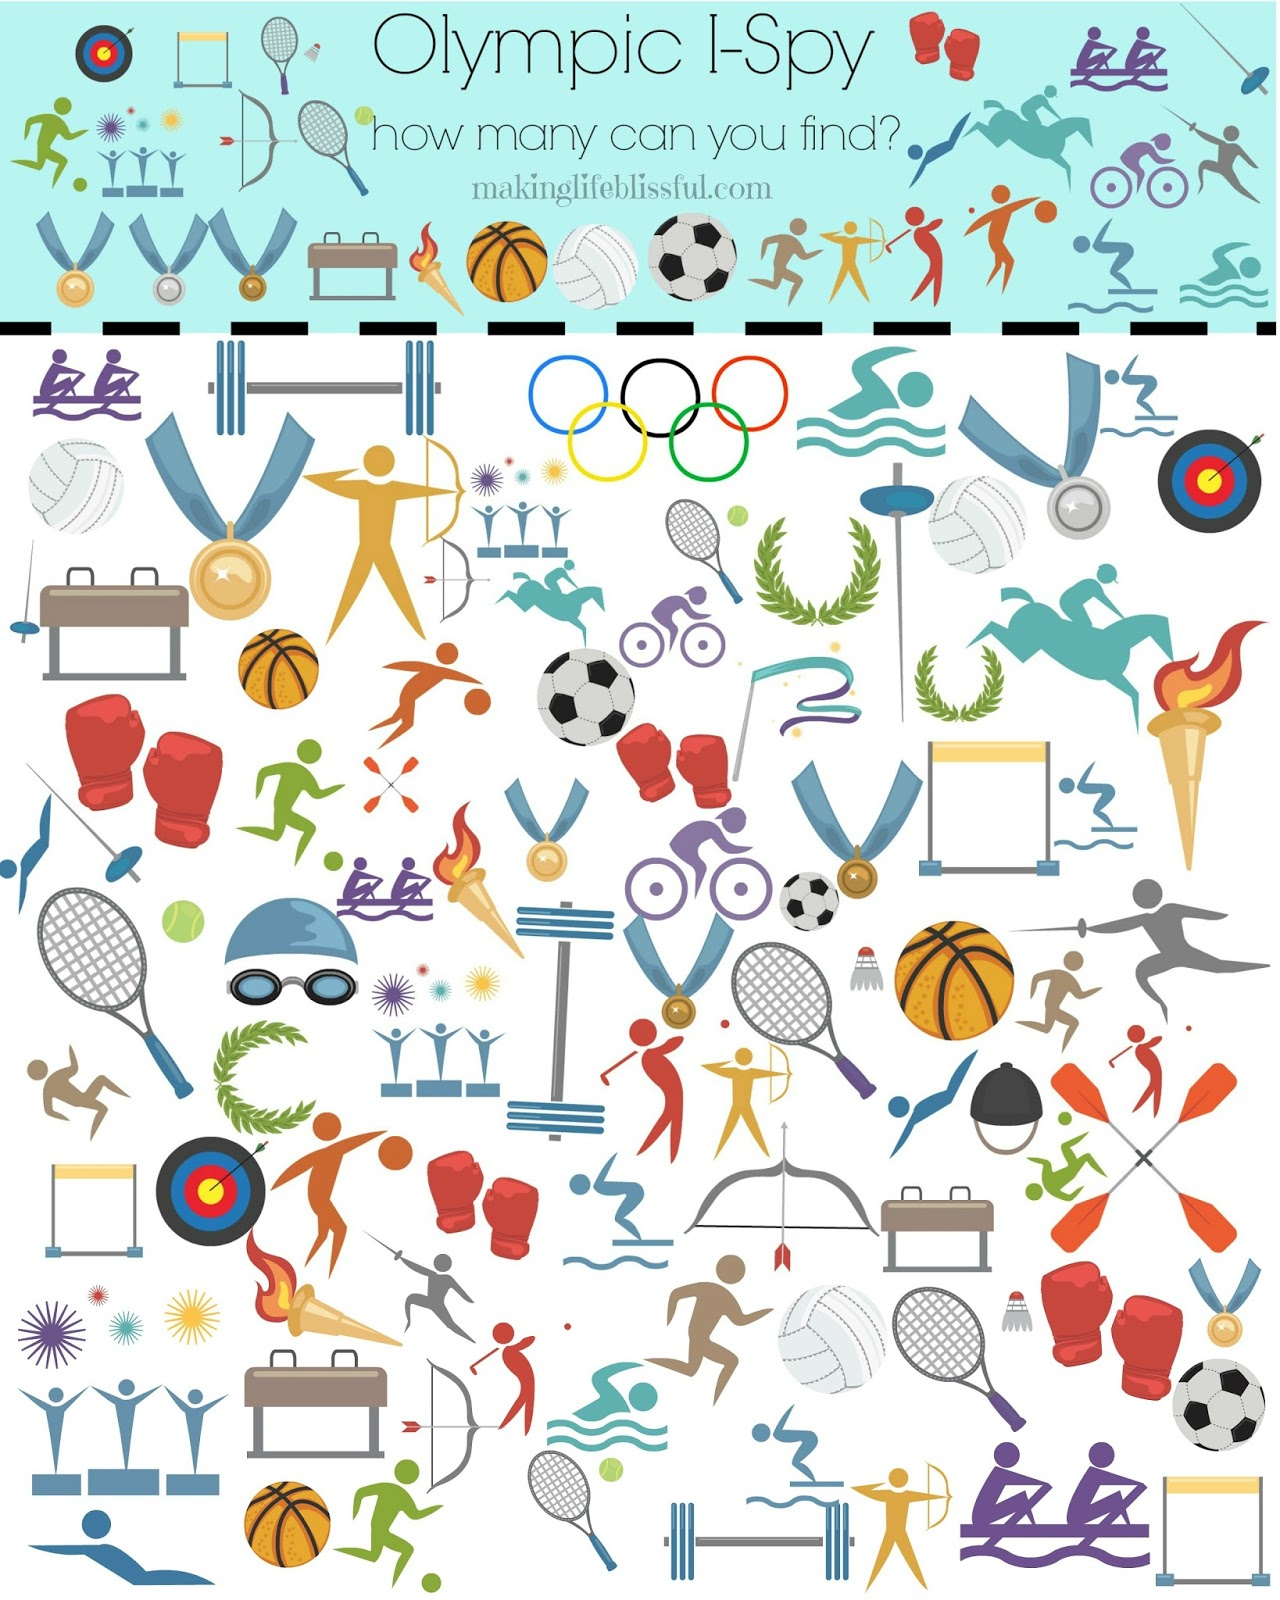 8 Easy Olympic Party Ideas For Kids